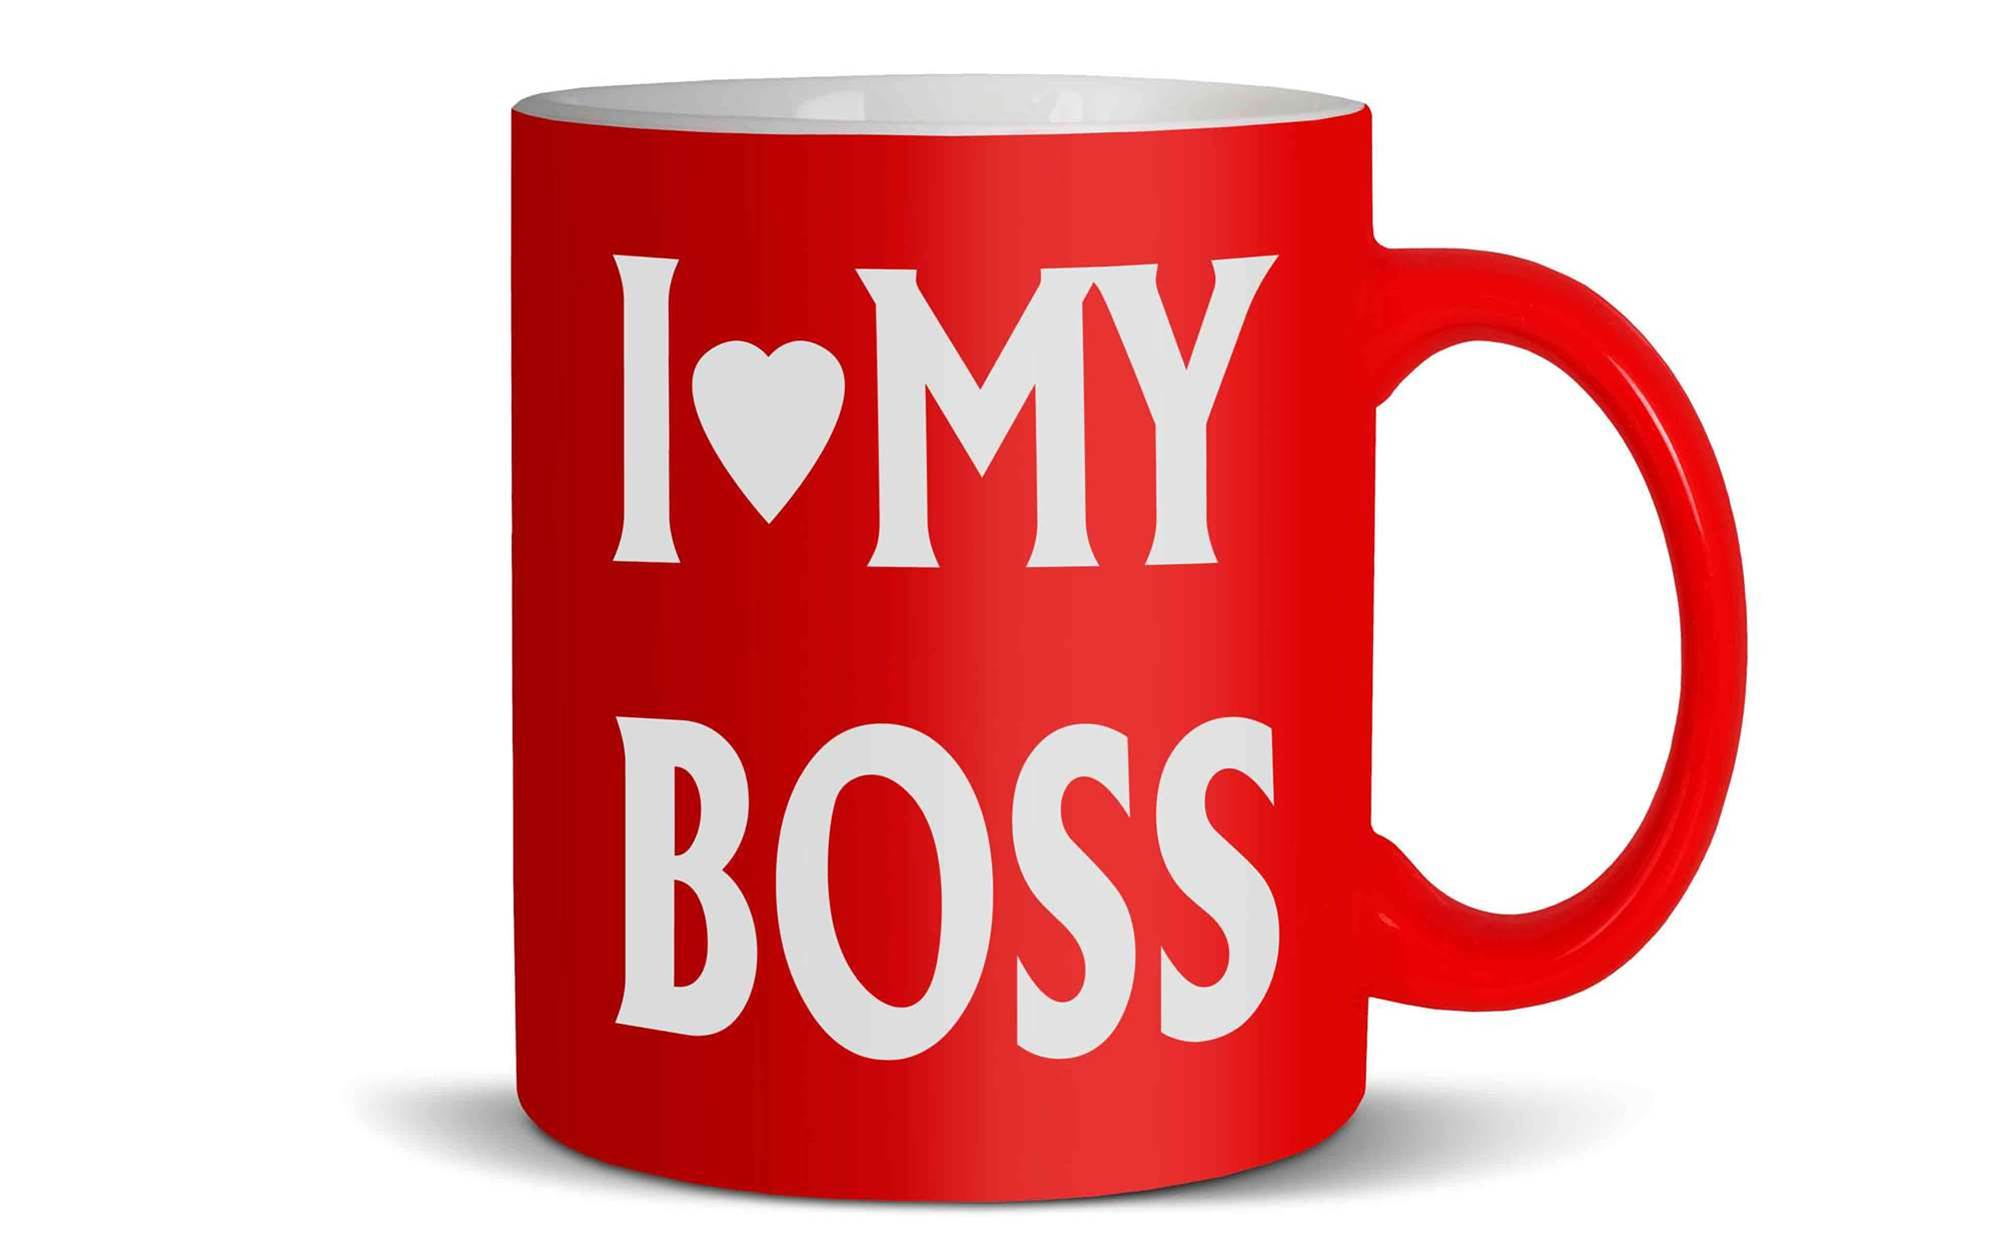 Being a great boss is about more than money